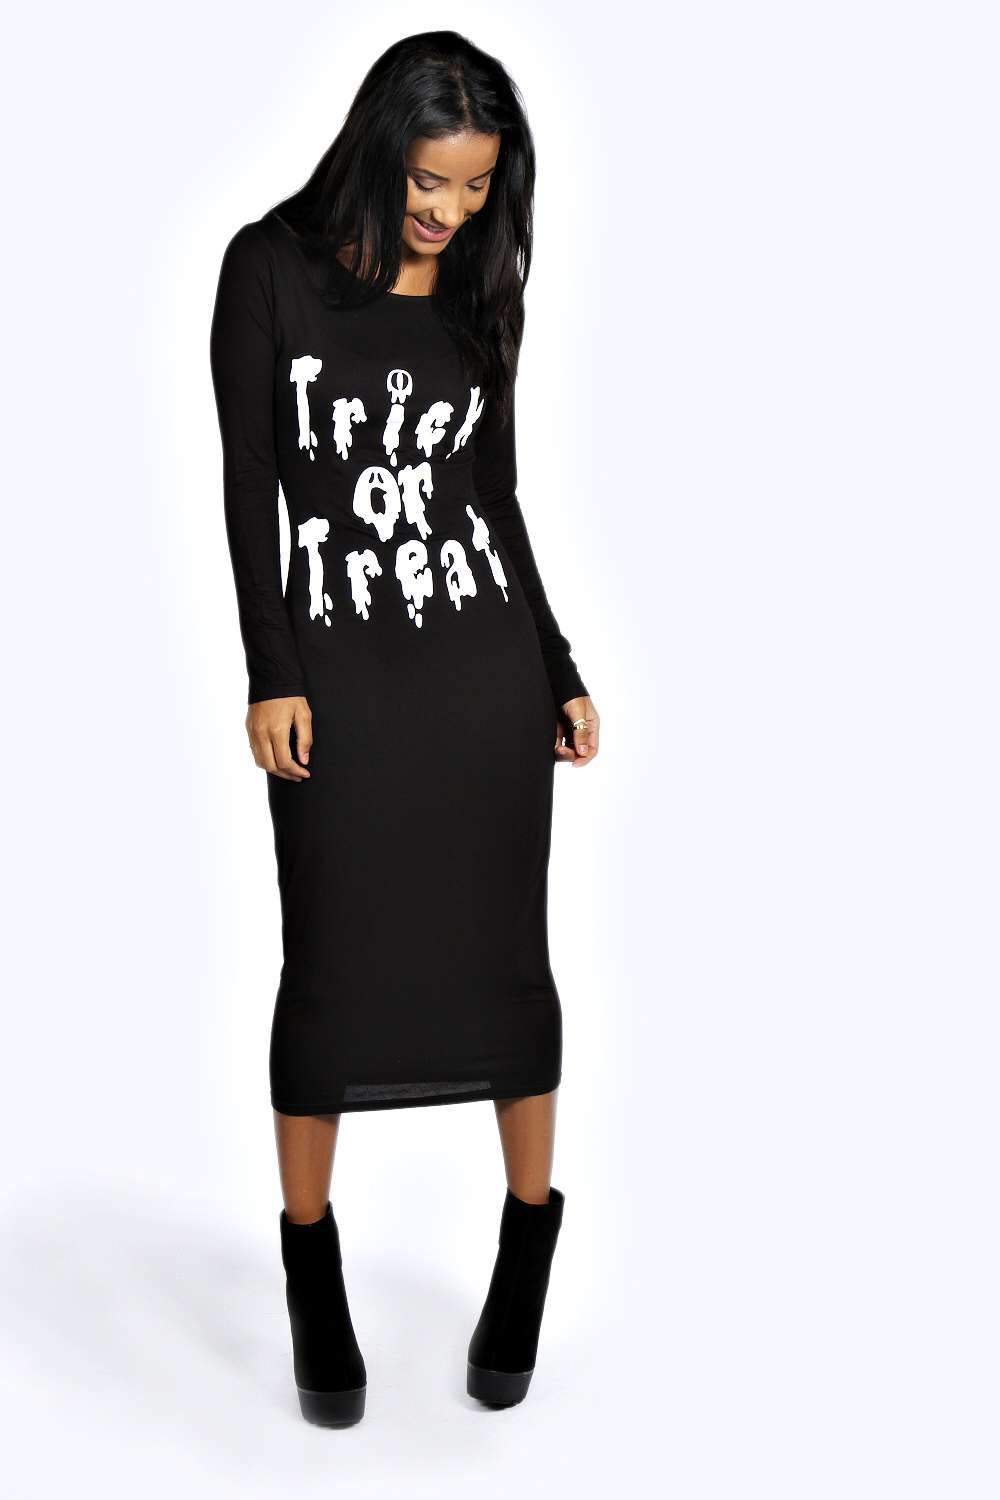 not in this fearsomely fashionable dress if youre after something with a halloween touch that is still flattering and on trend this boohoo dress will do